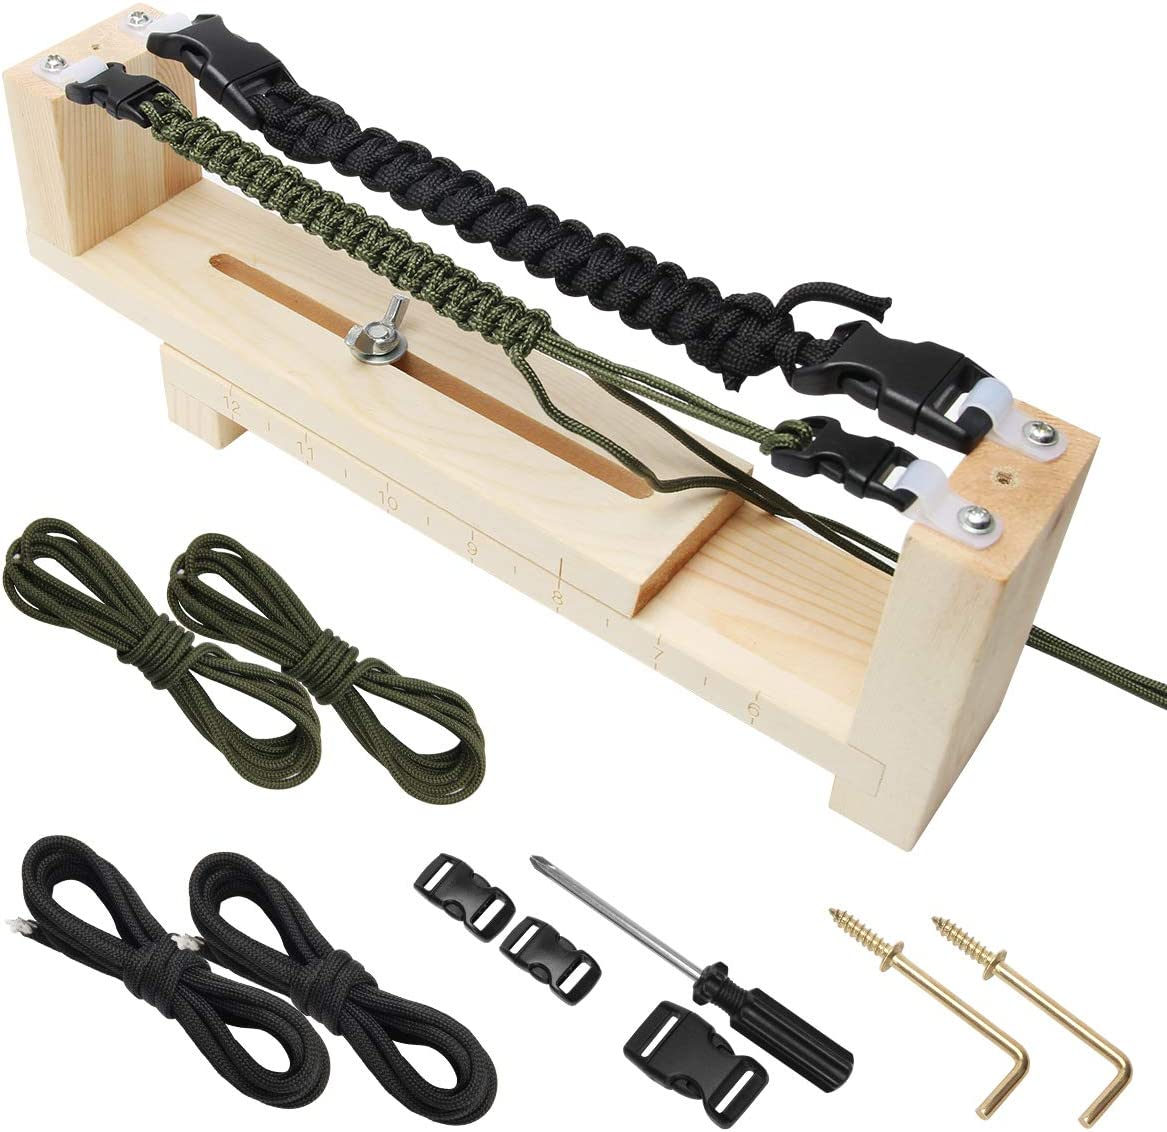 Ahier Paracord Jig Ezzzy-jig Paracord Bracelet Maker DIY Craft Tool Kit Paracord Jig Kit and Accessories Bracelet Jig with Parachute Cord and Quick Release Buckles Paracord Dog Collar Jig